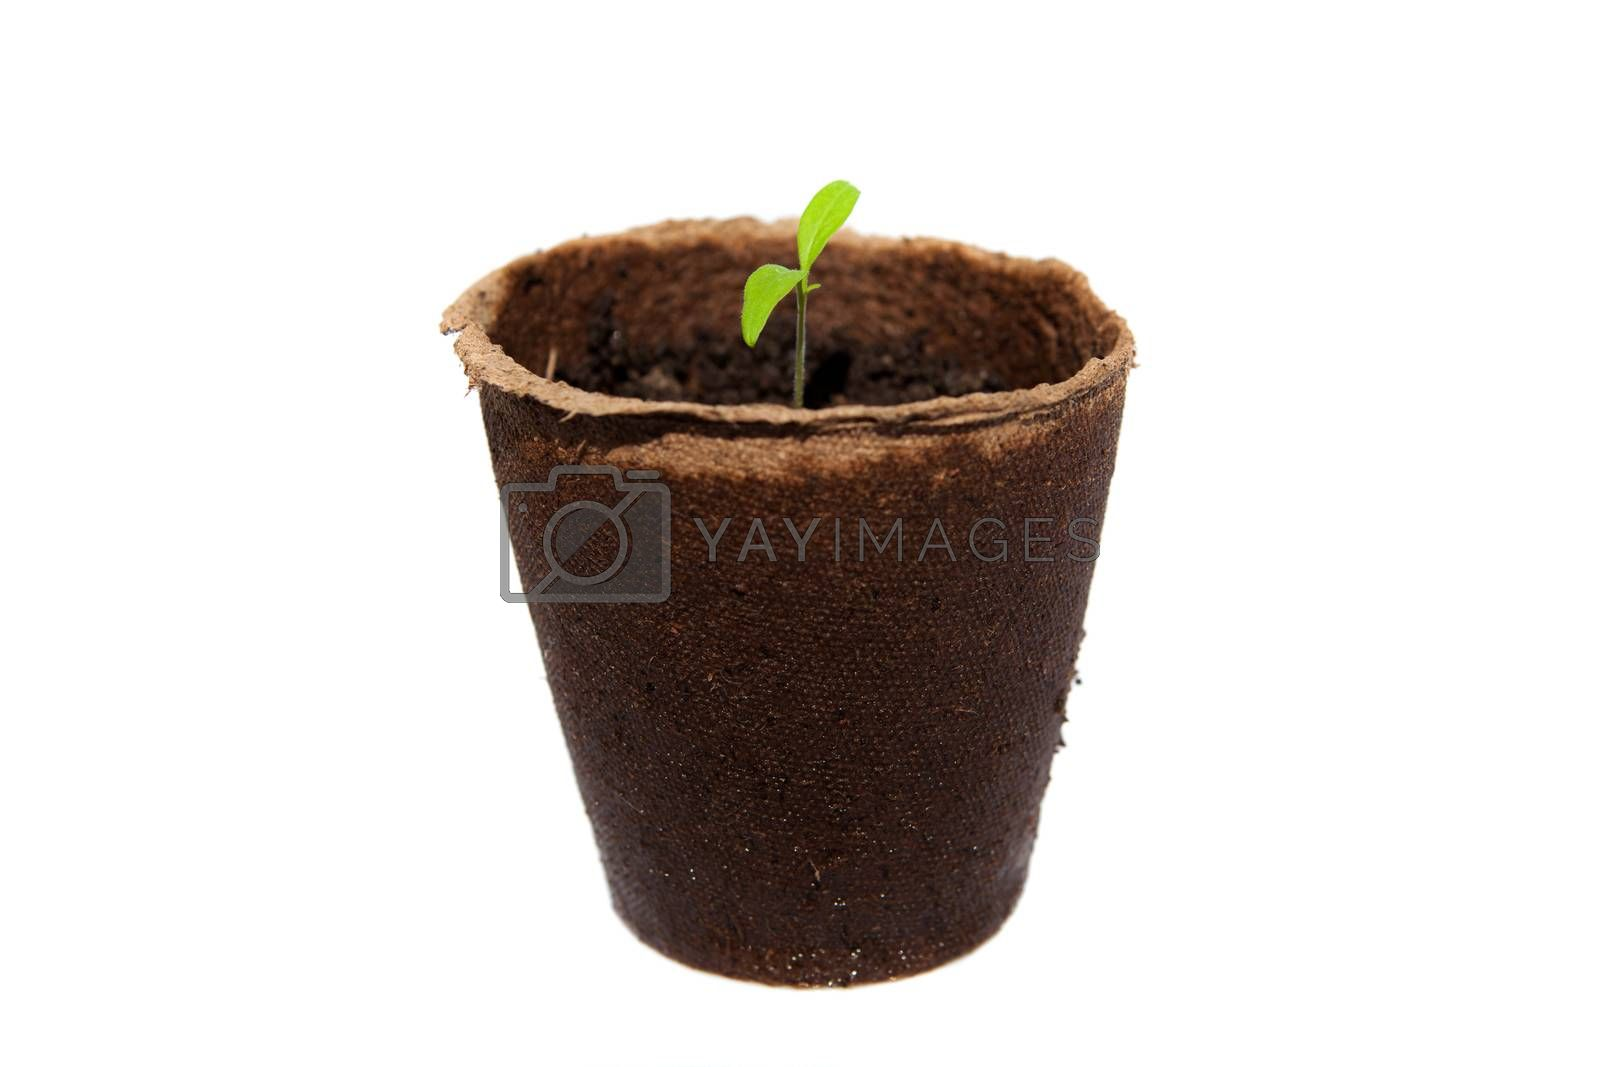 new sprout of tomato in turf pot